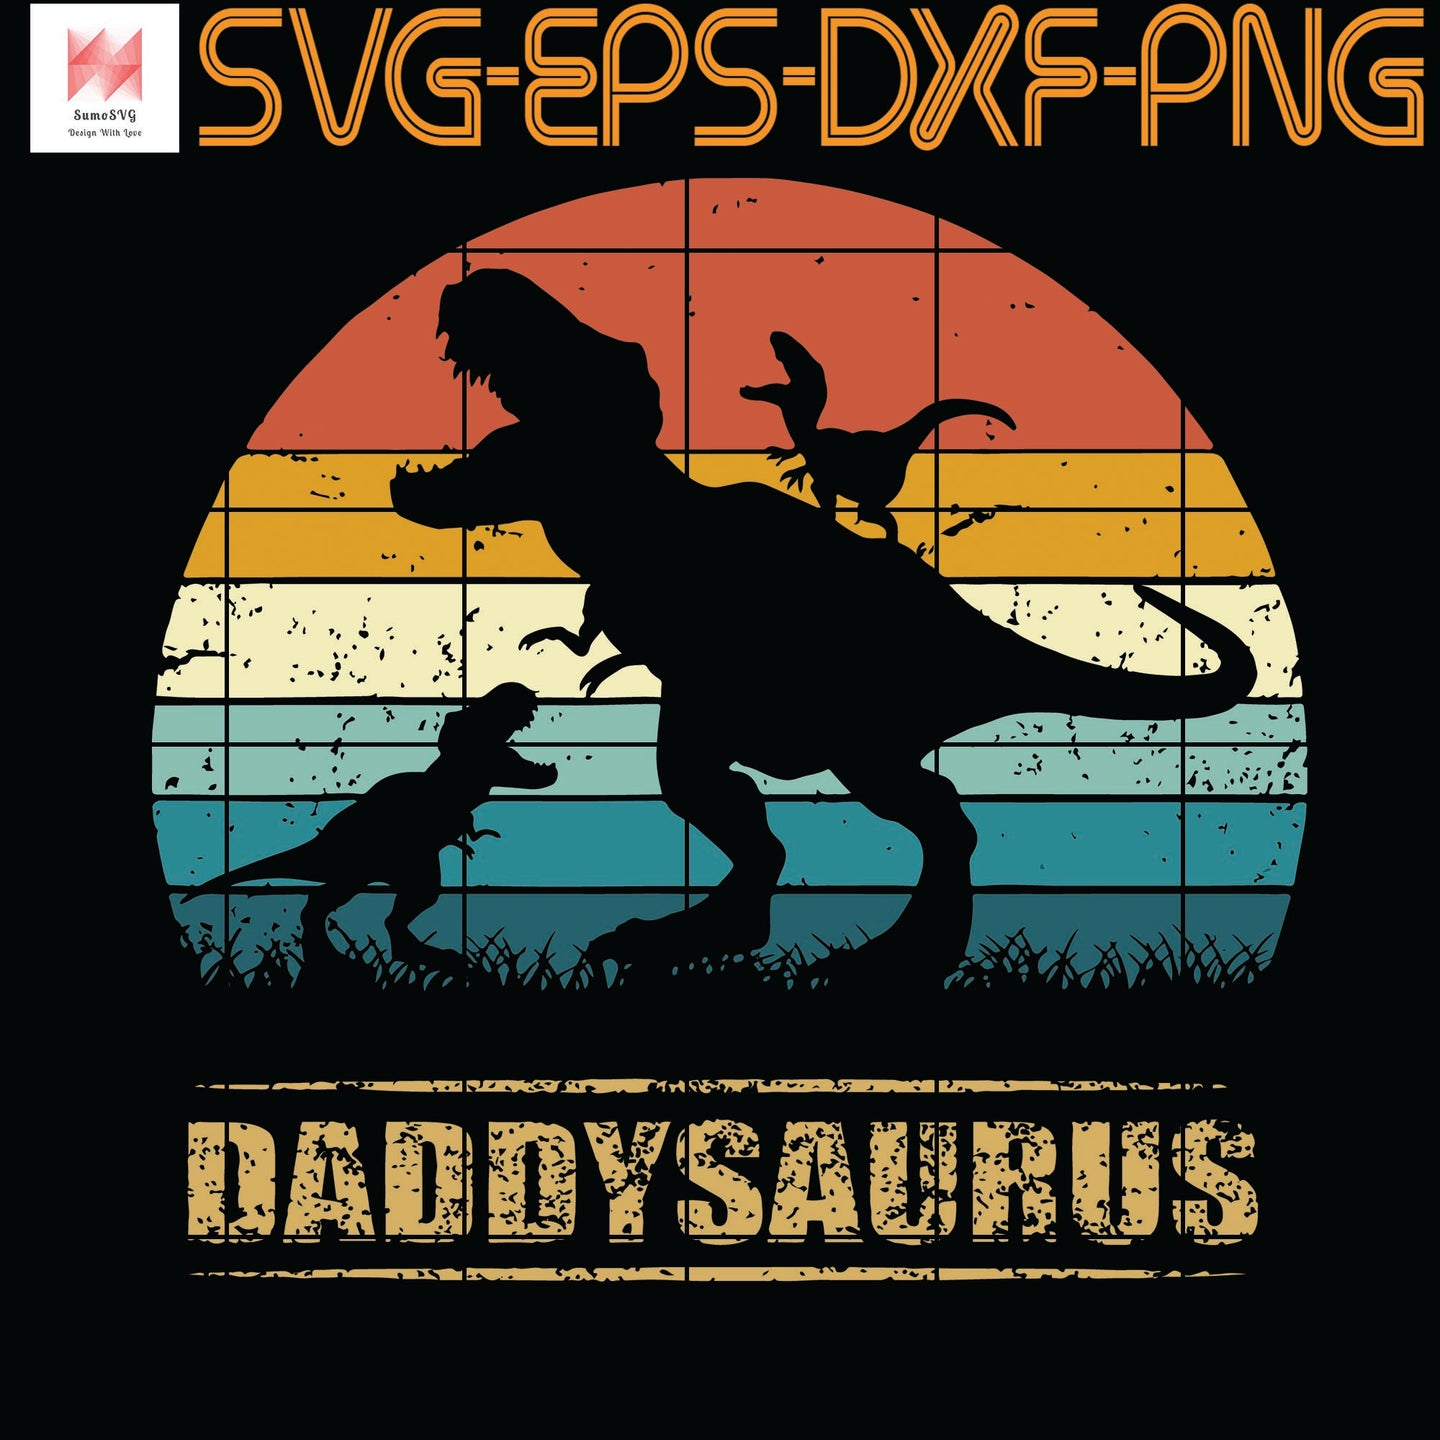 Daddy Dinosaur Daddysaurus 2 Two kids Gift For Dad, Quotes, Funny Quotes, Cameo, Cricut, Silhouette, SVG, PNG, Eps, DXF, Digital Download